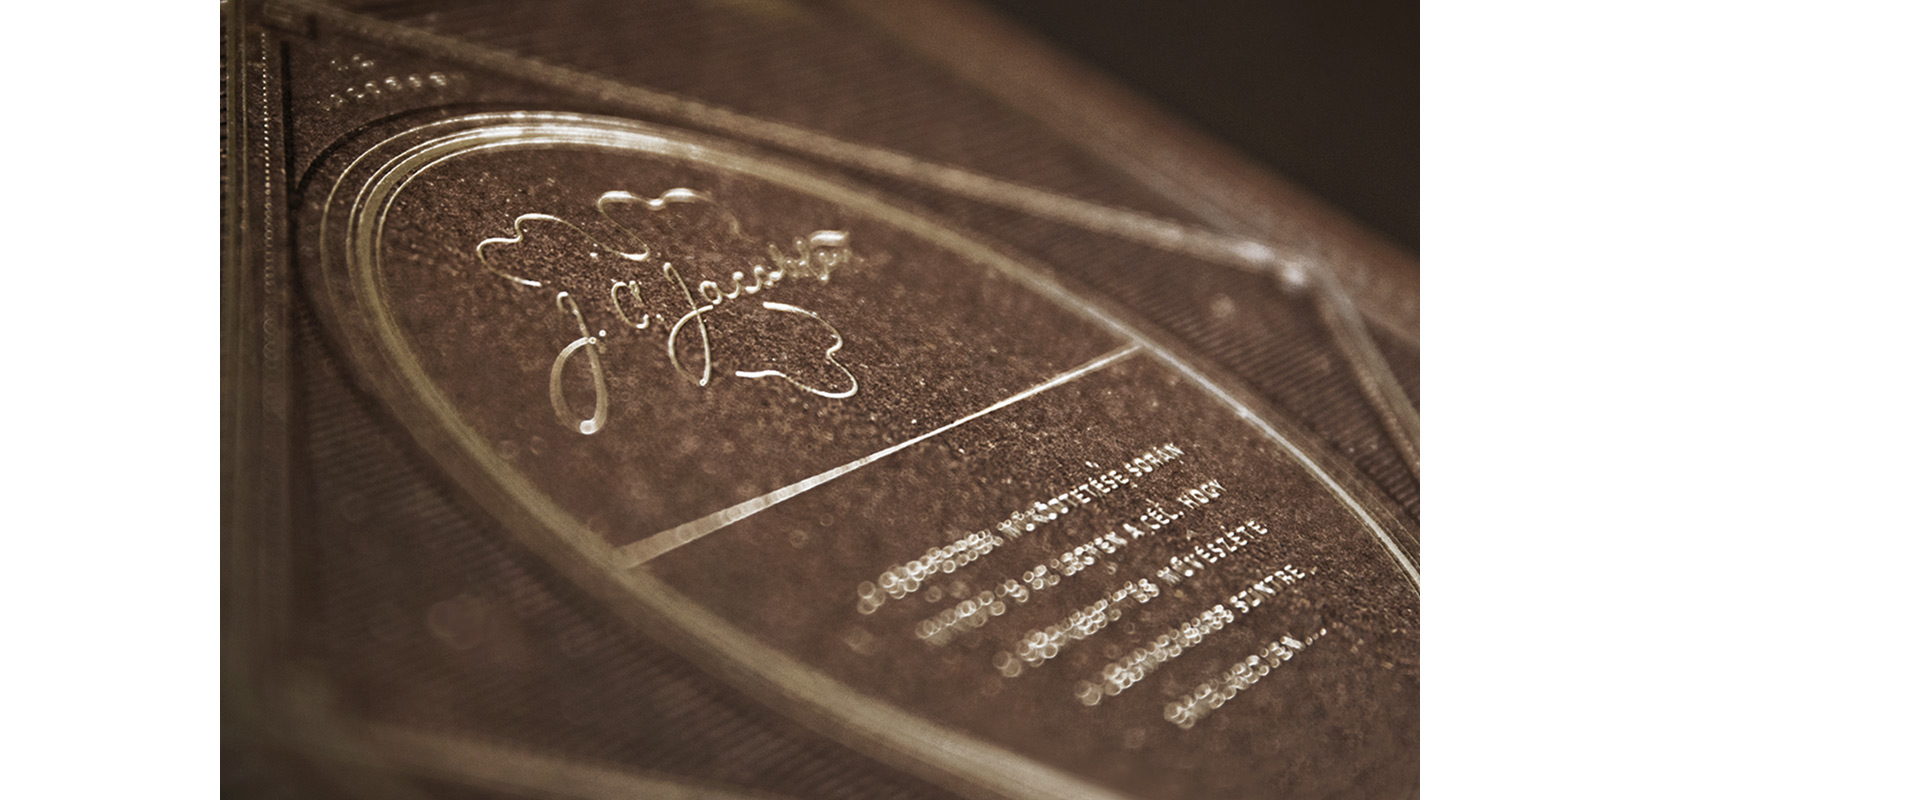 Carlsberg Beer Book Hot Foil